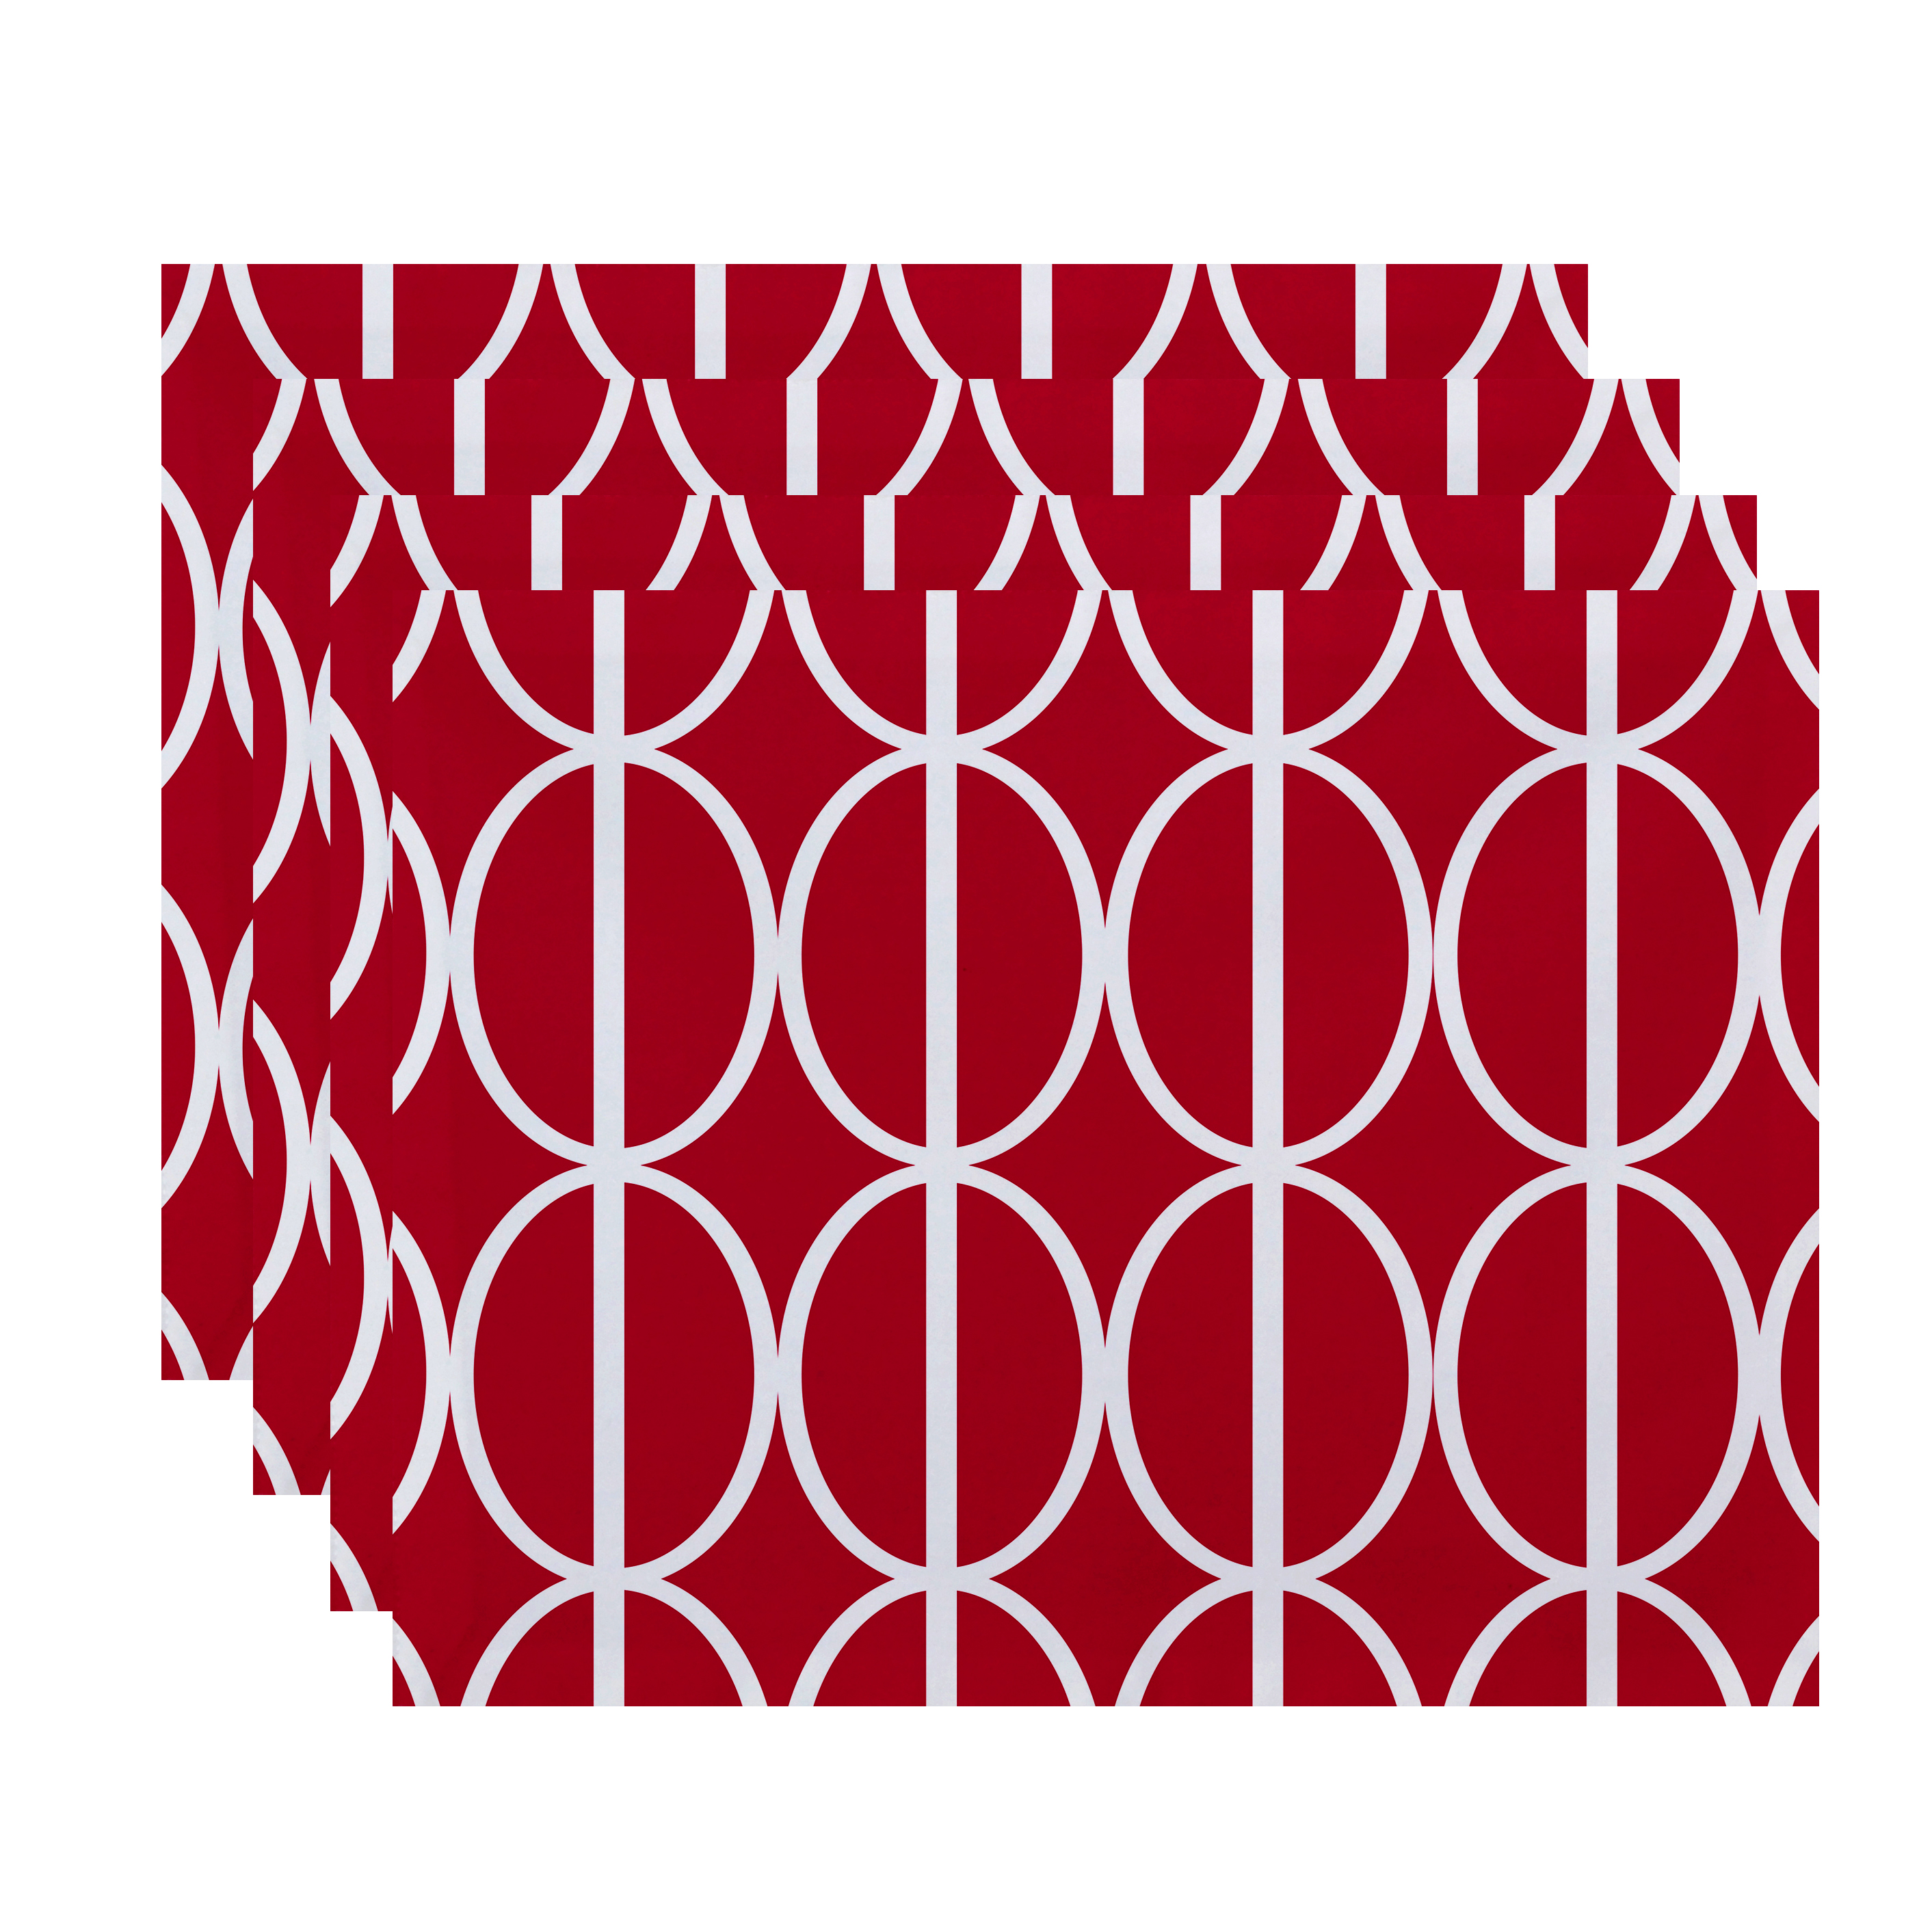 Simply Daisy, 18 x 14 Inch Ovals Go 'Round Geometric Print Placemat (set of 4), Pink/Fushcia